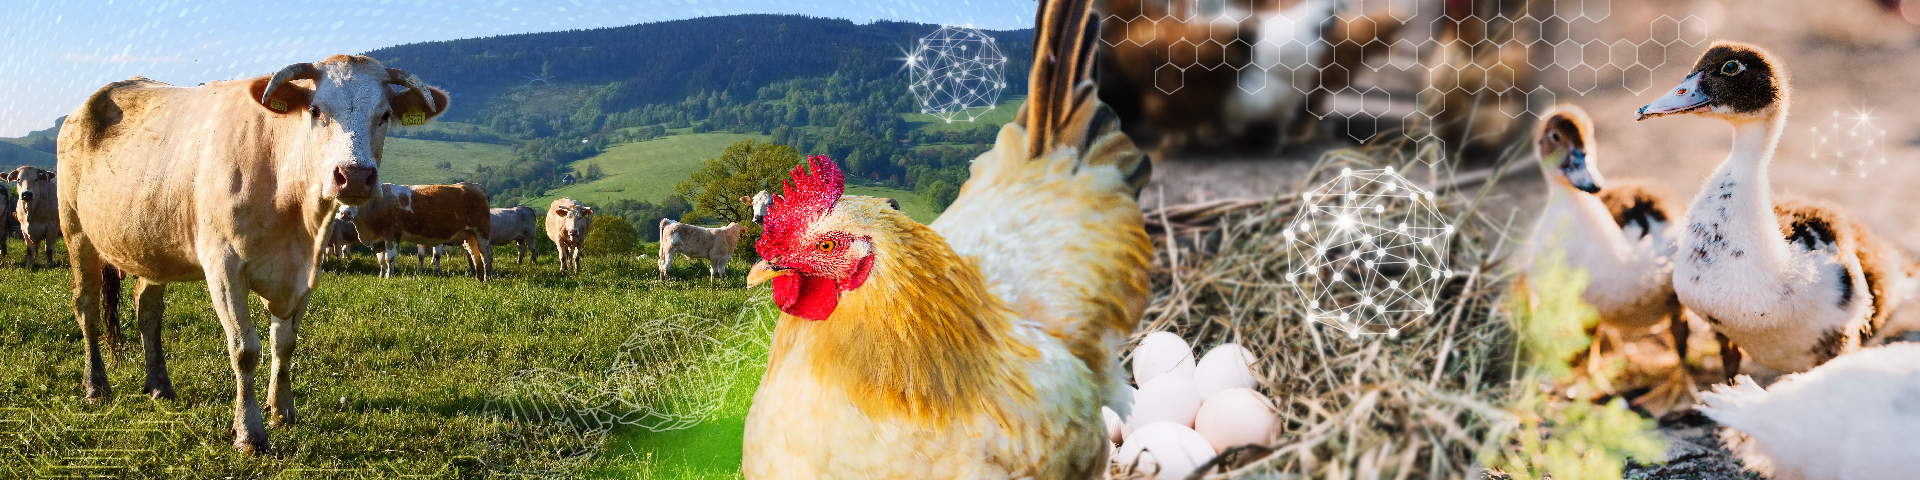 """<span style=""""font-size: 24pt;"""">World's Poultry Congress 2021</span> <div id=""""gtx-trans"""" style=""""position: absolute; left: -29px; top: 24px;""""></div>"""